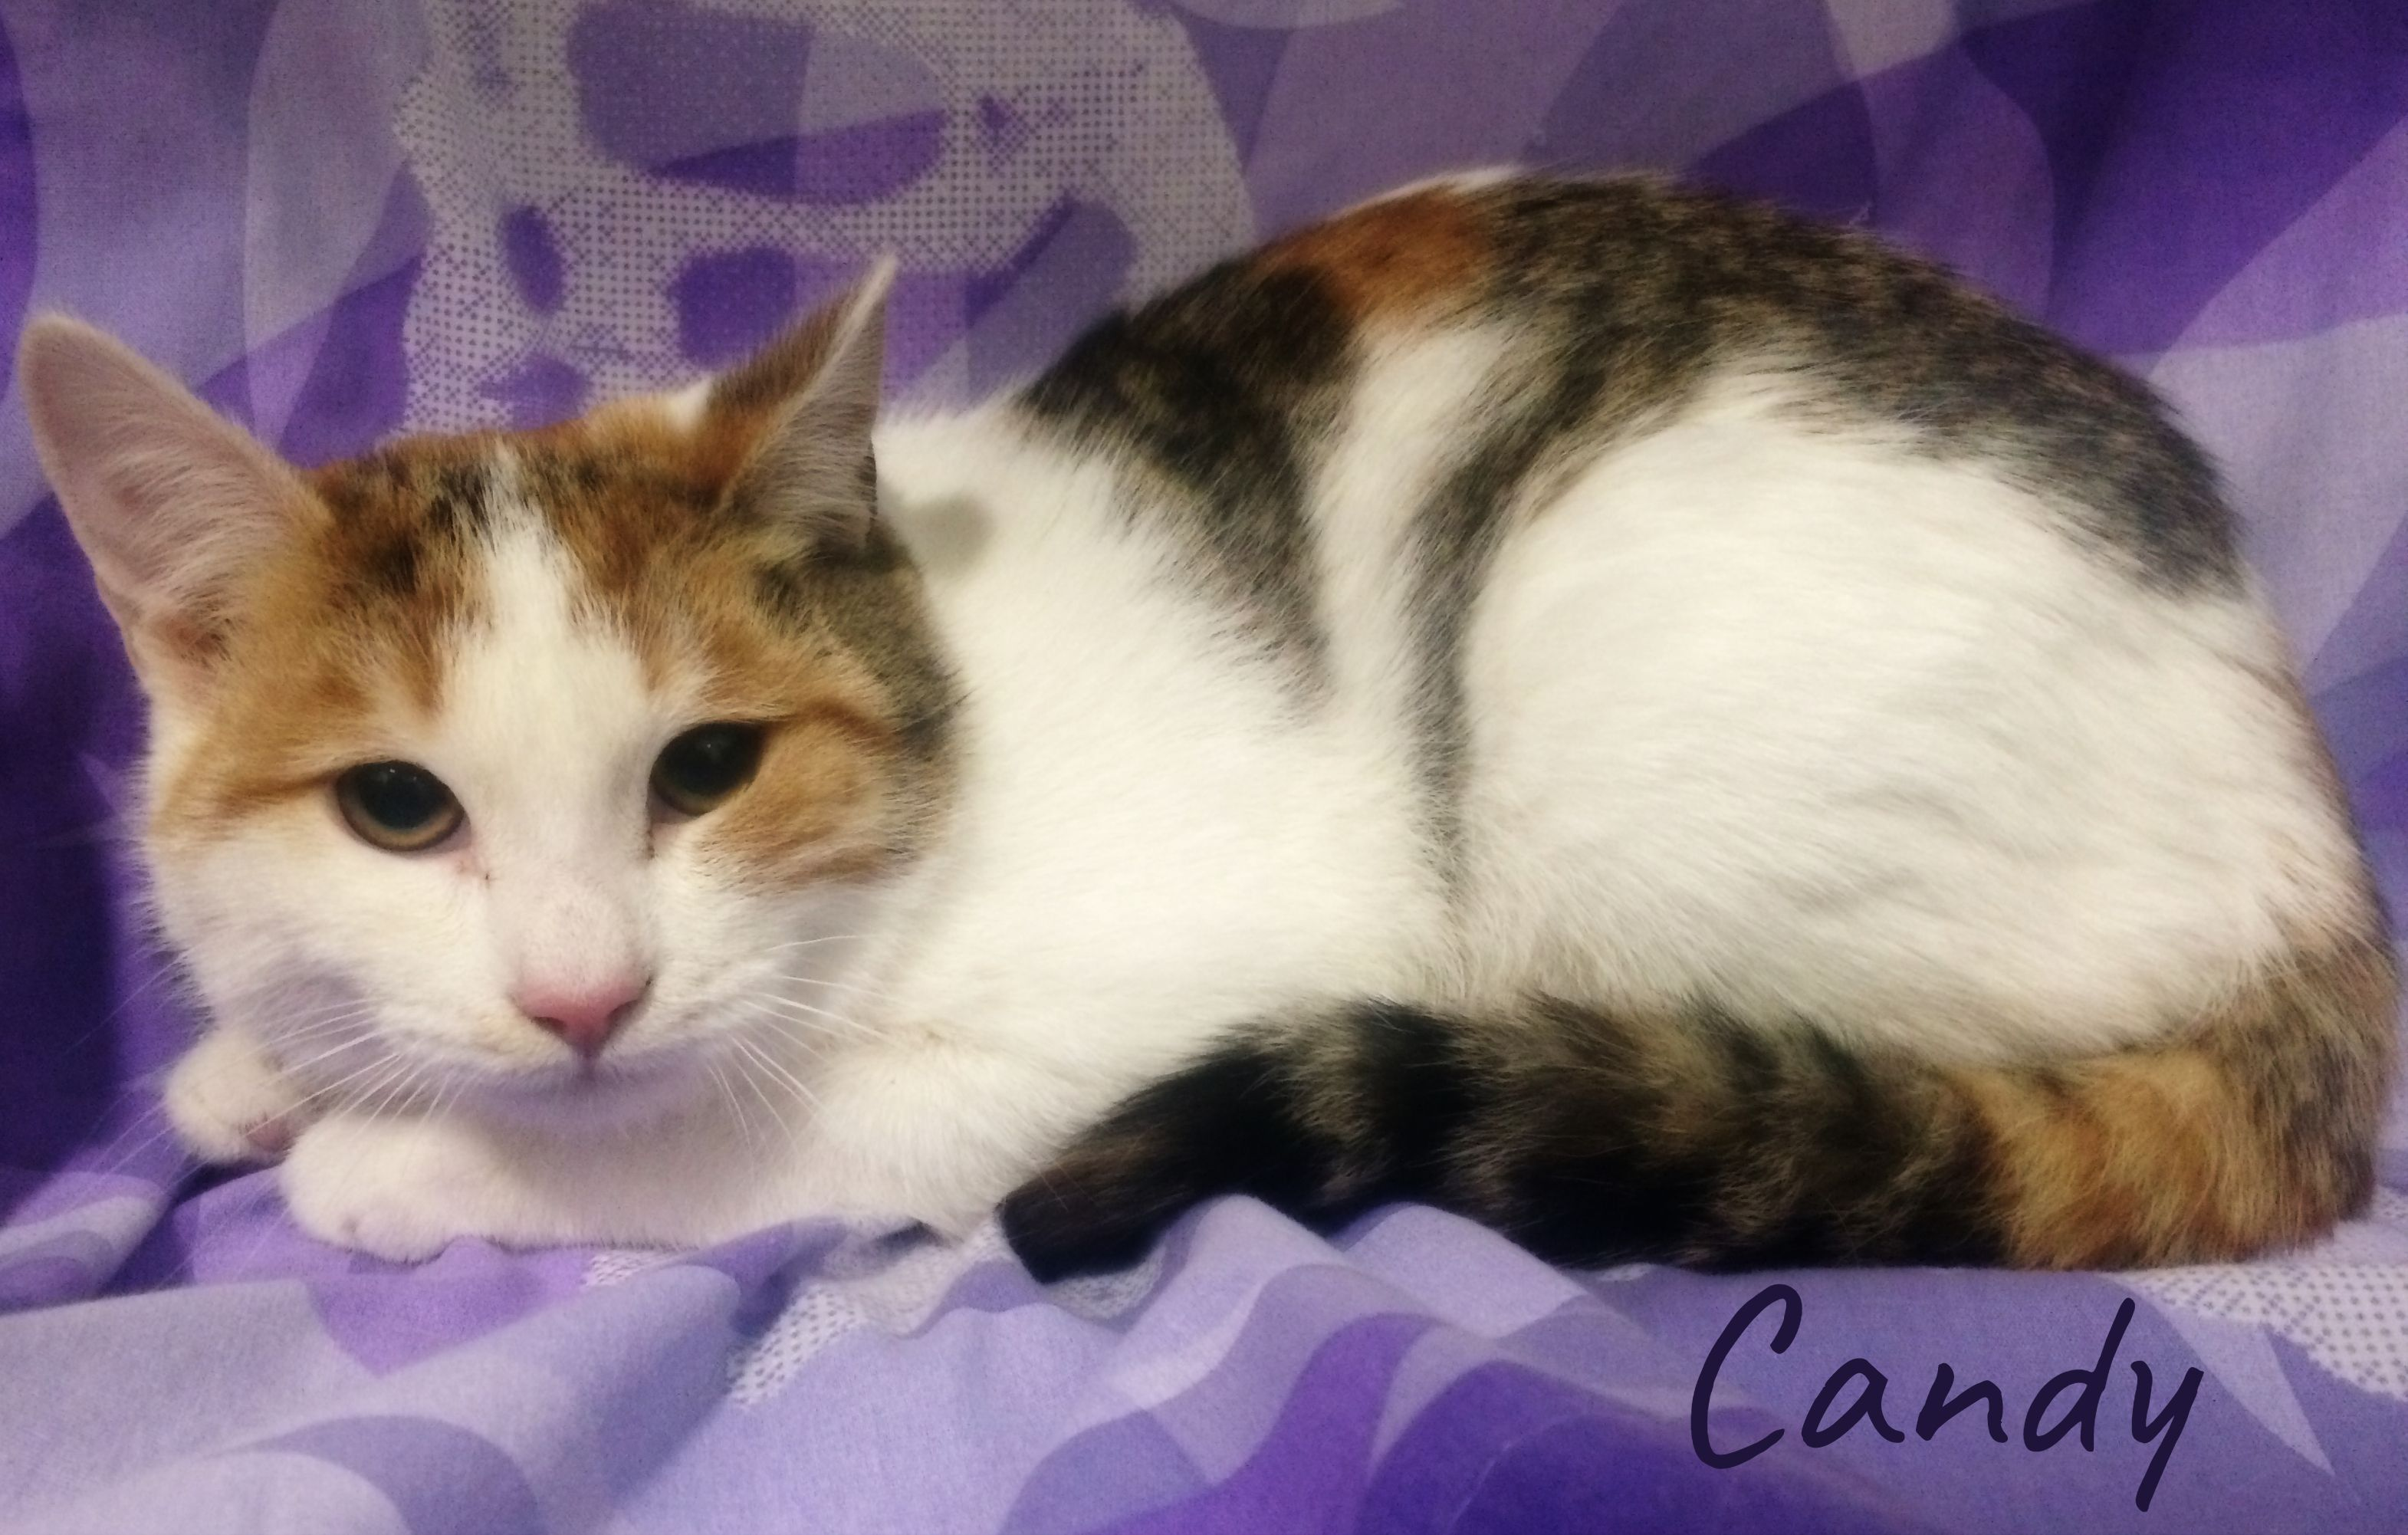 Adopt Candy on Petfinder Cat adoption, Help homeless